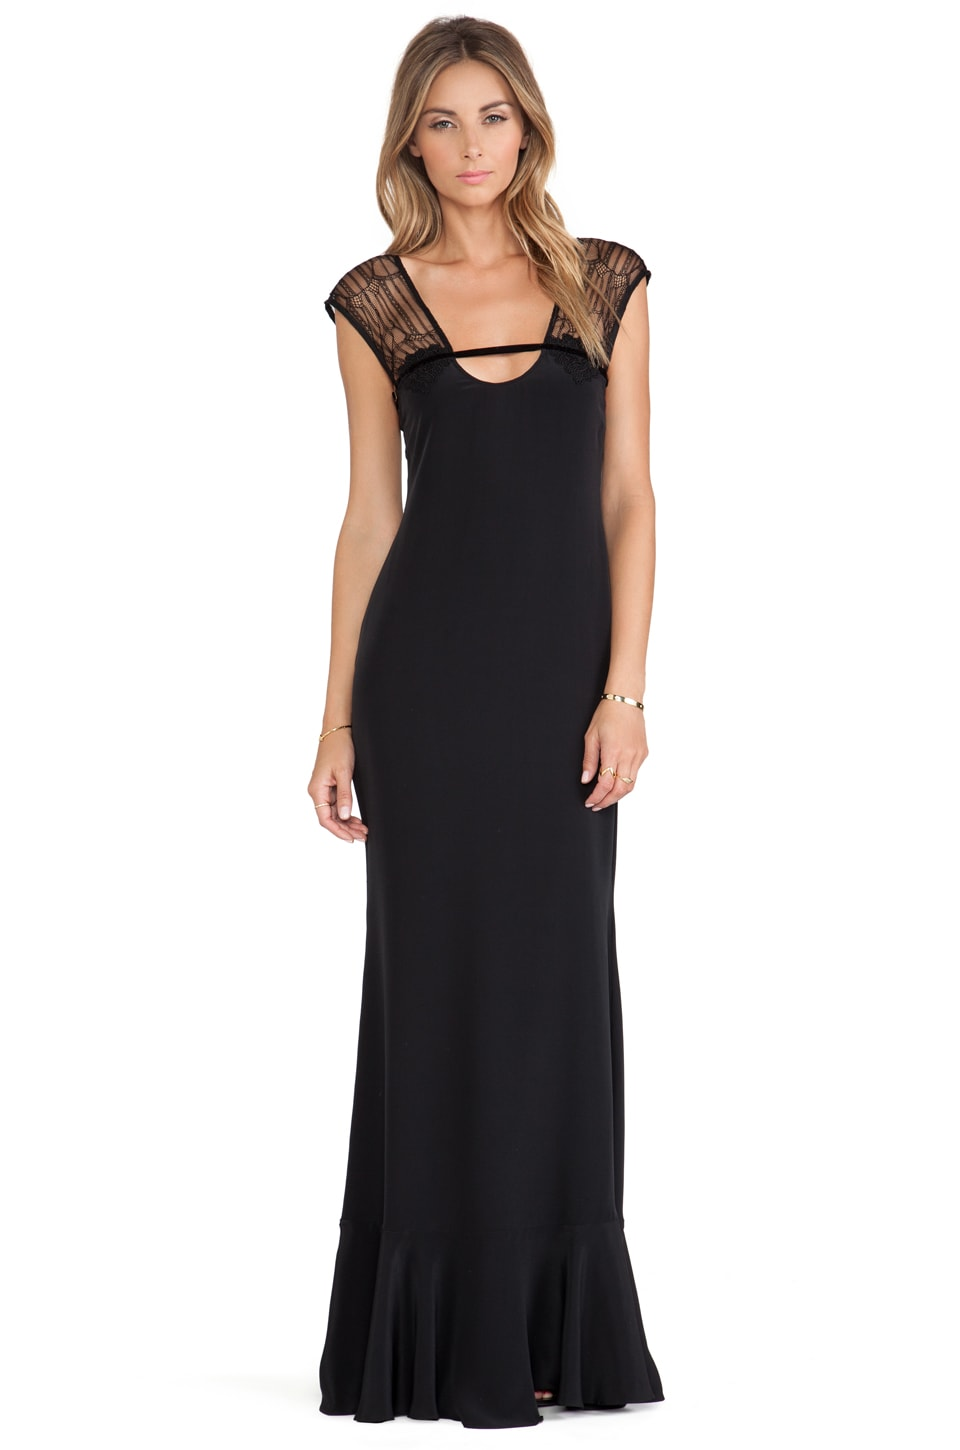 Carmella Cintia Maxi Dress in Black